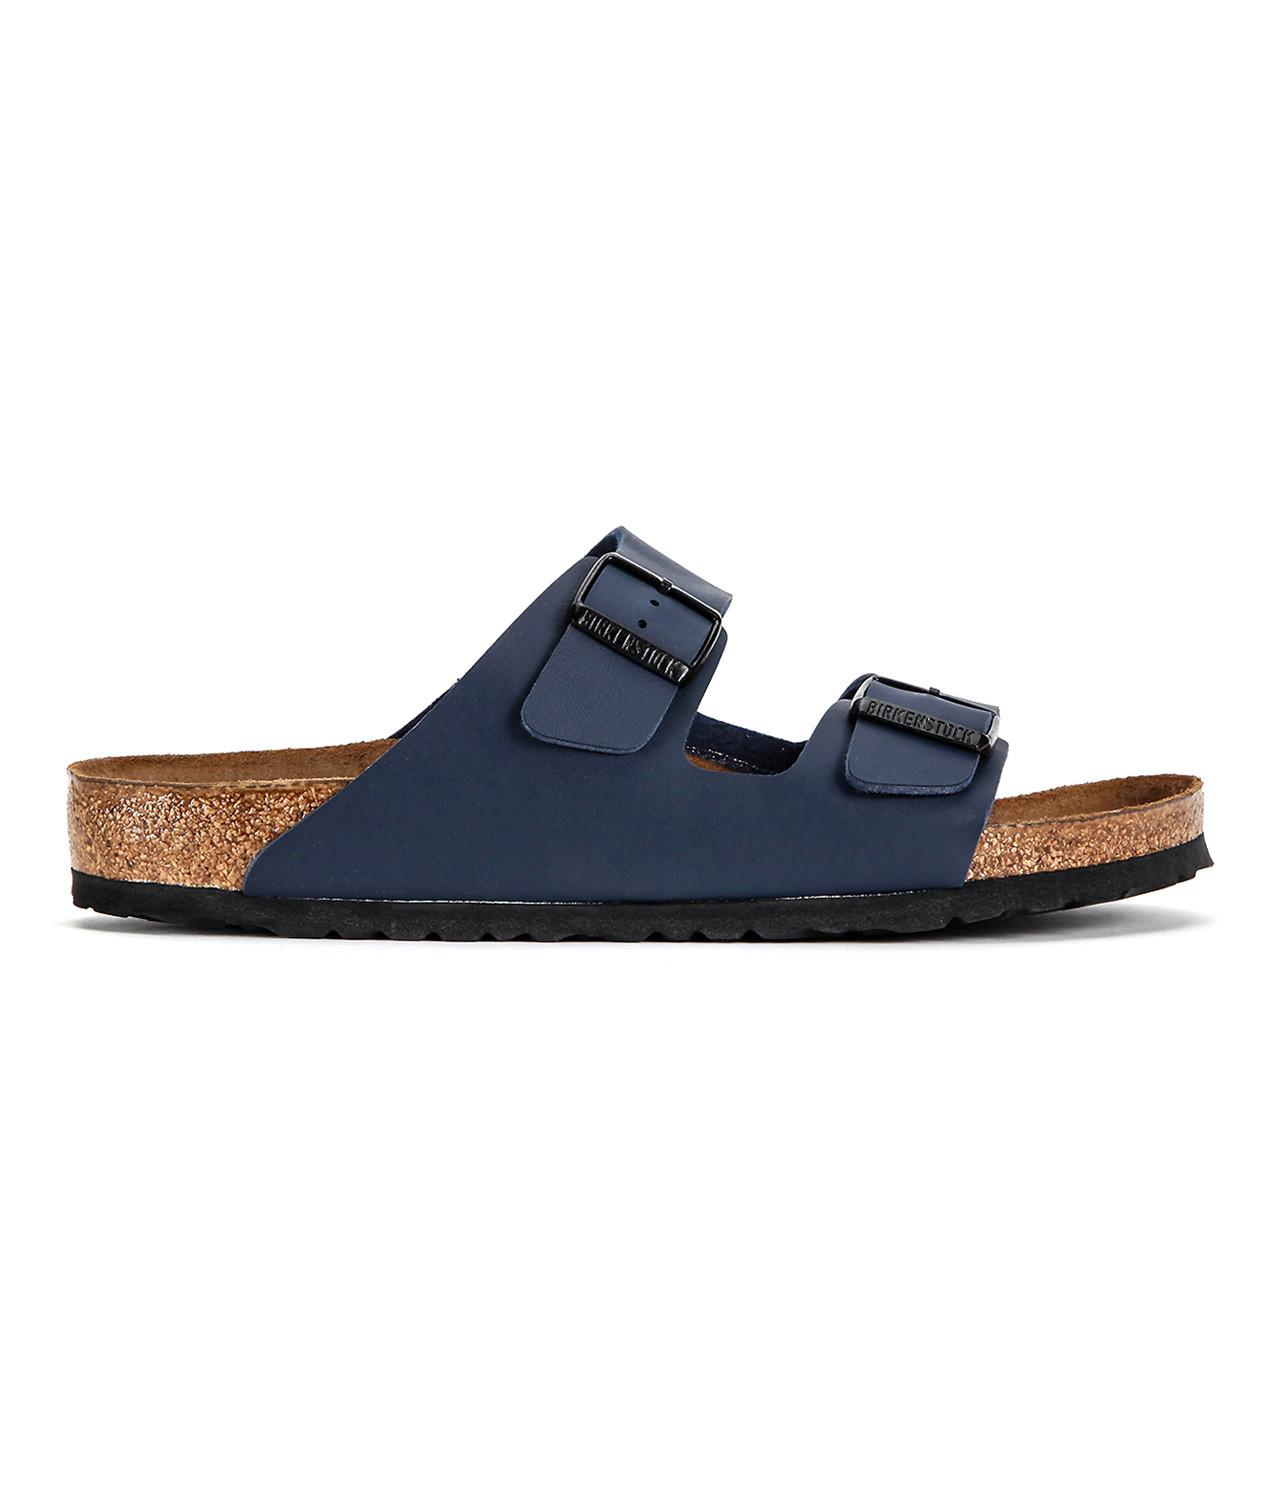 c72c734e6c4 Birkenstock Arizona Soft Footbed Birko-flor in Blue for Men - Lyst